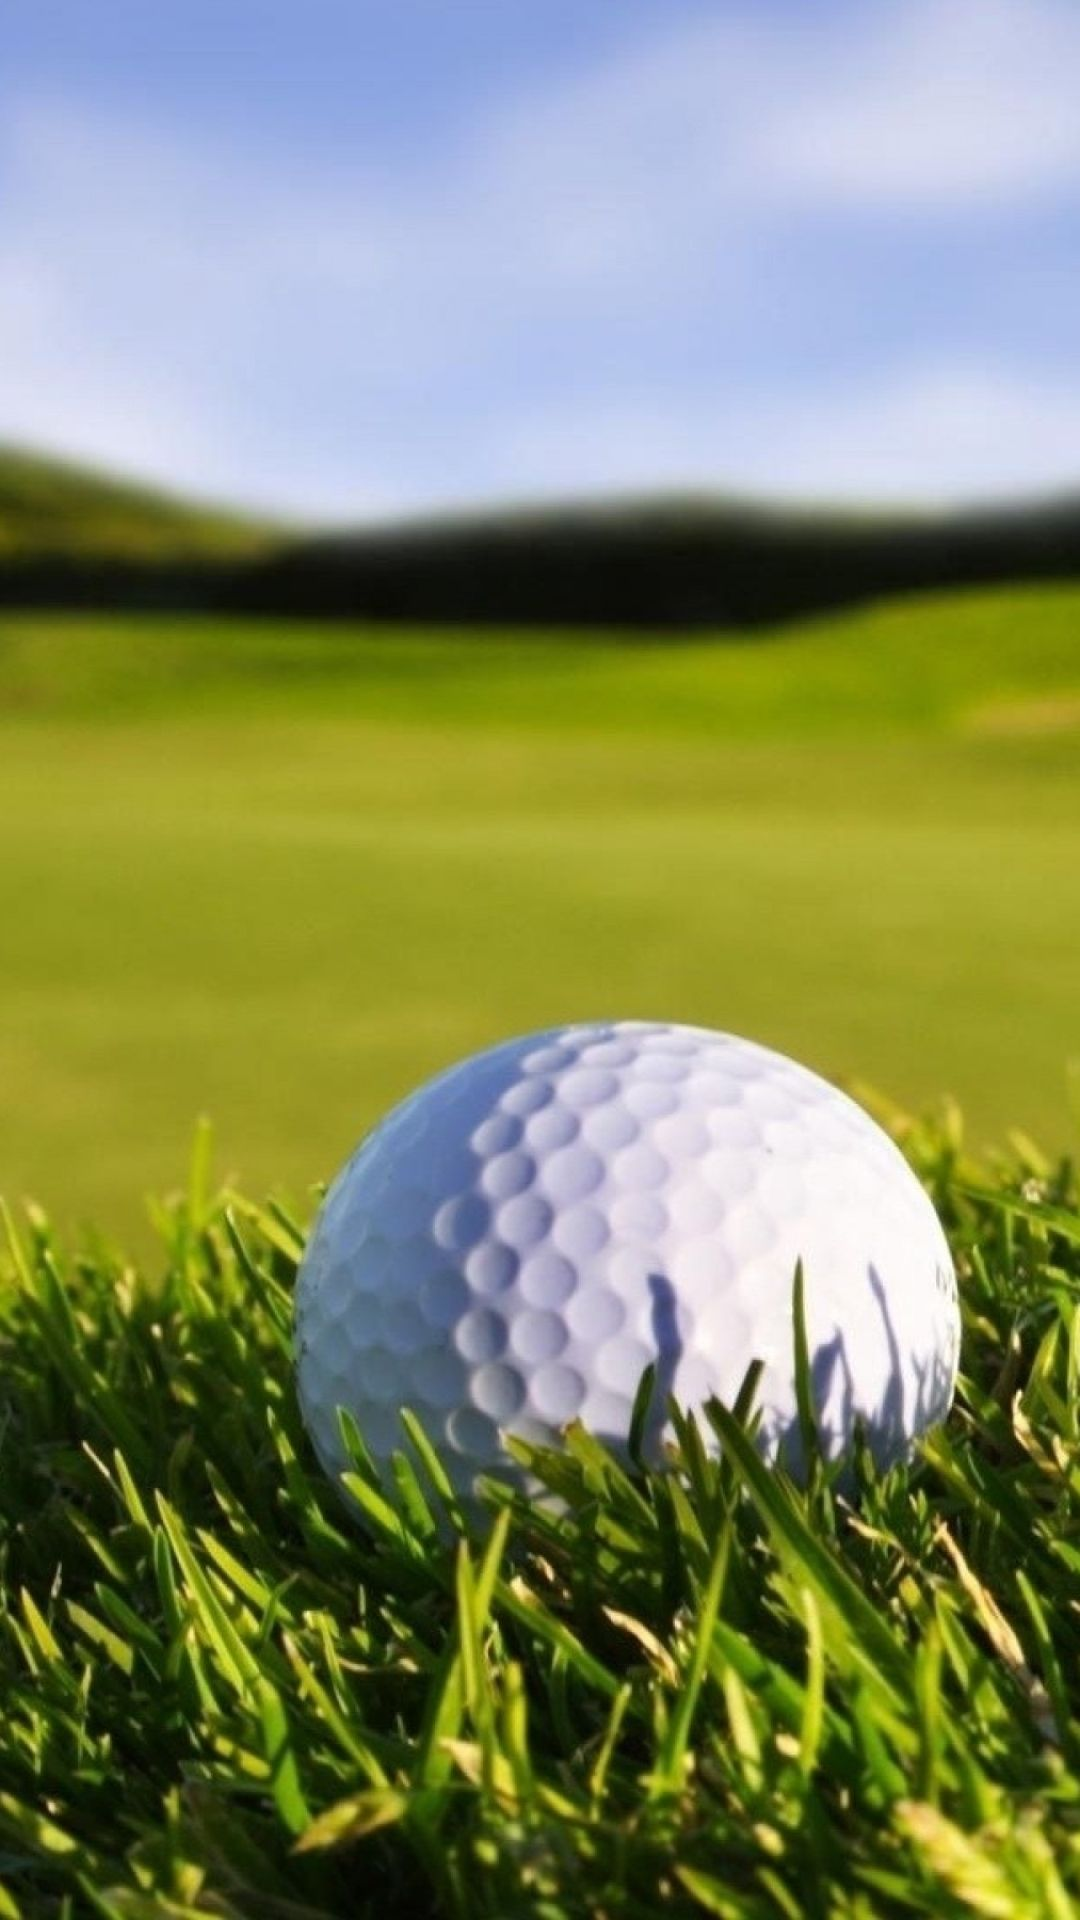 Nike Golf Wallpapers Wallpaper Golf Drivers Golf Pictures Golf Courses